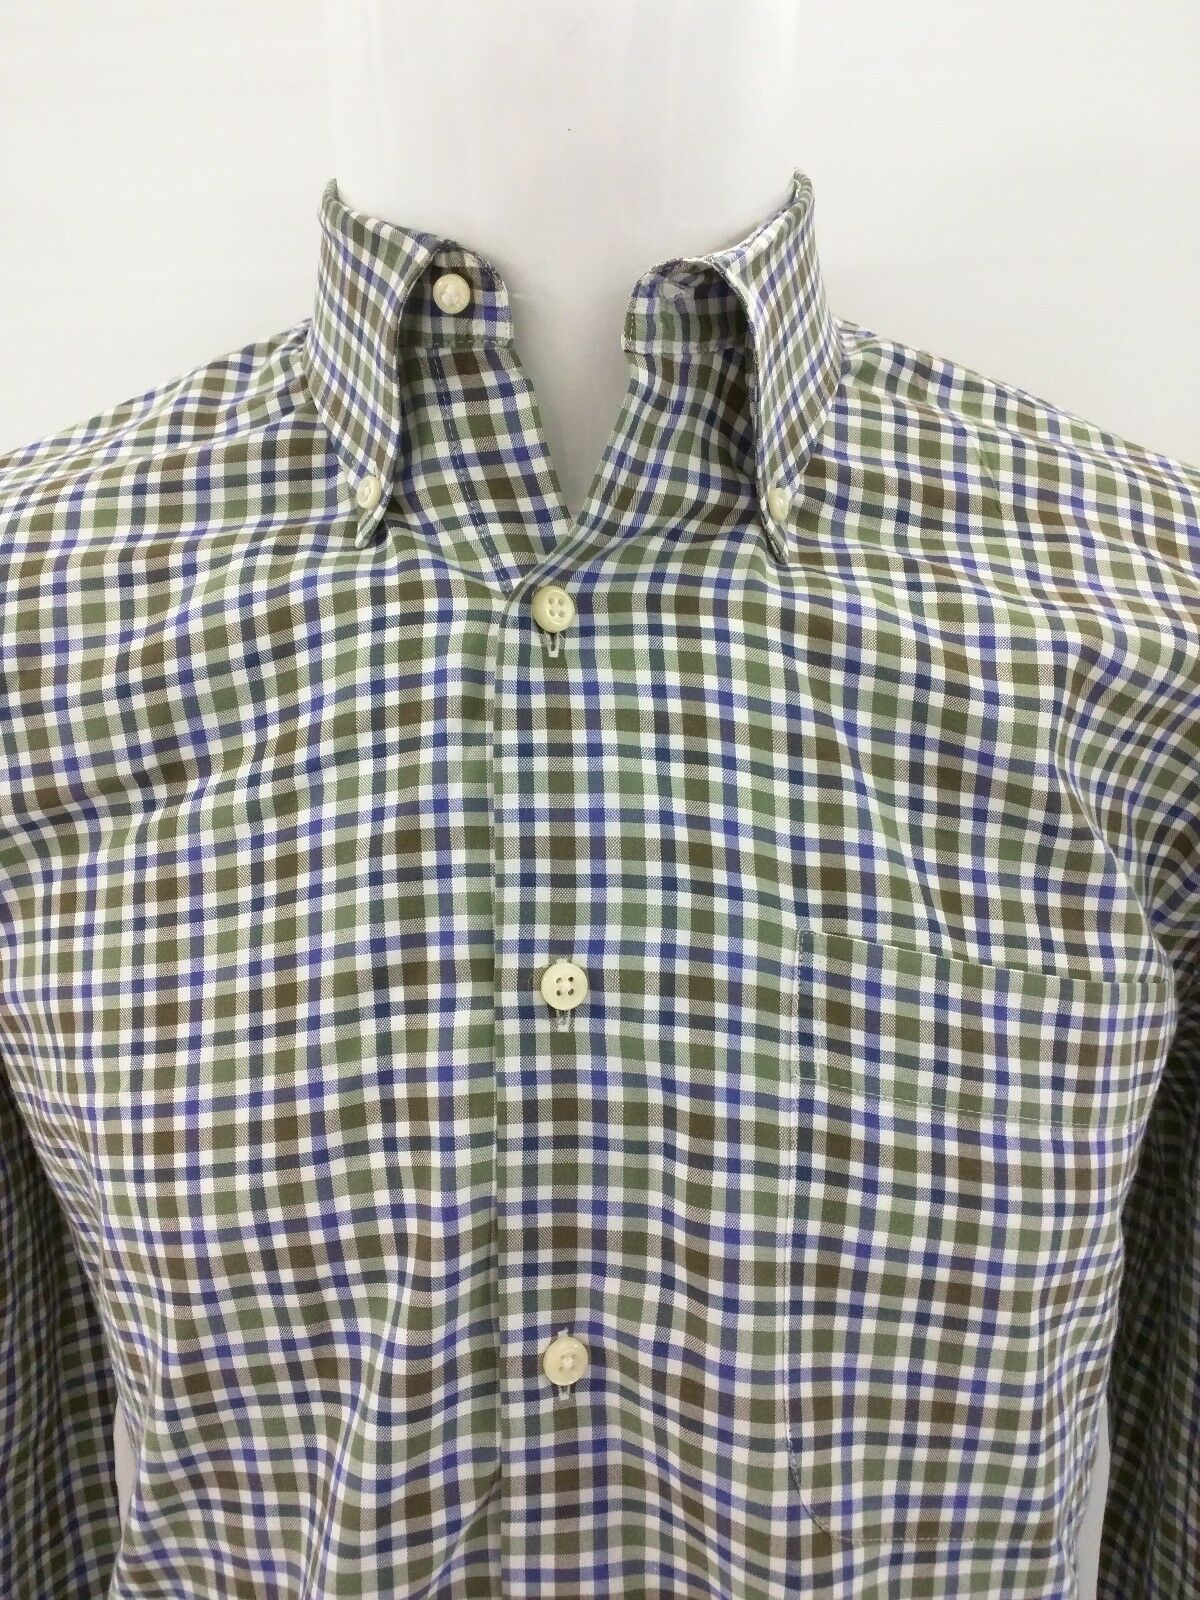 Peter Millar Mens Button-up Brown Green bluee Plaid Shirt Mens Size Medium